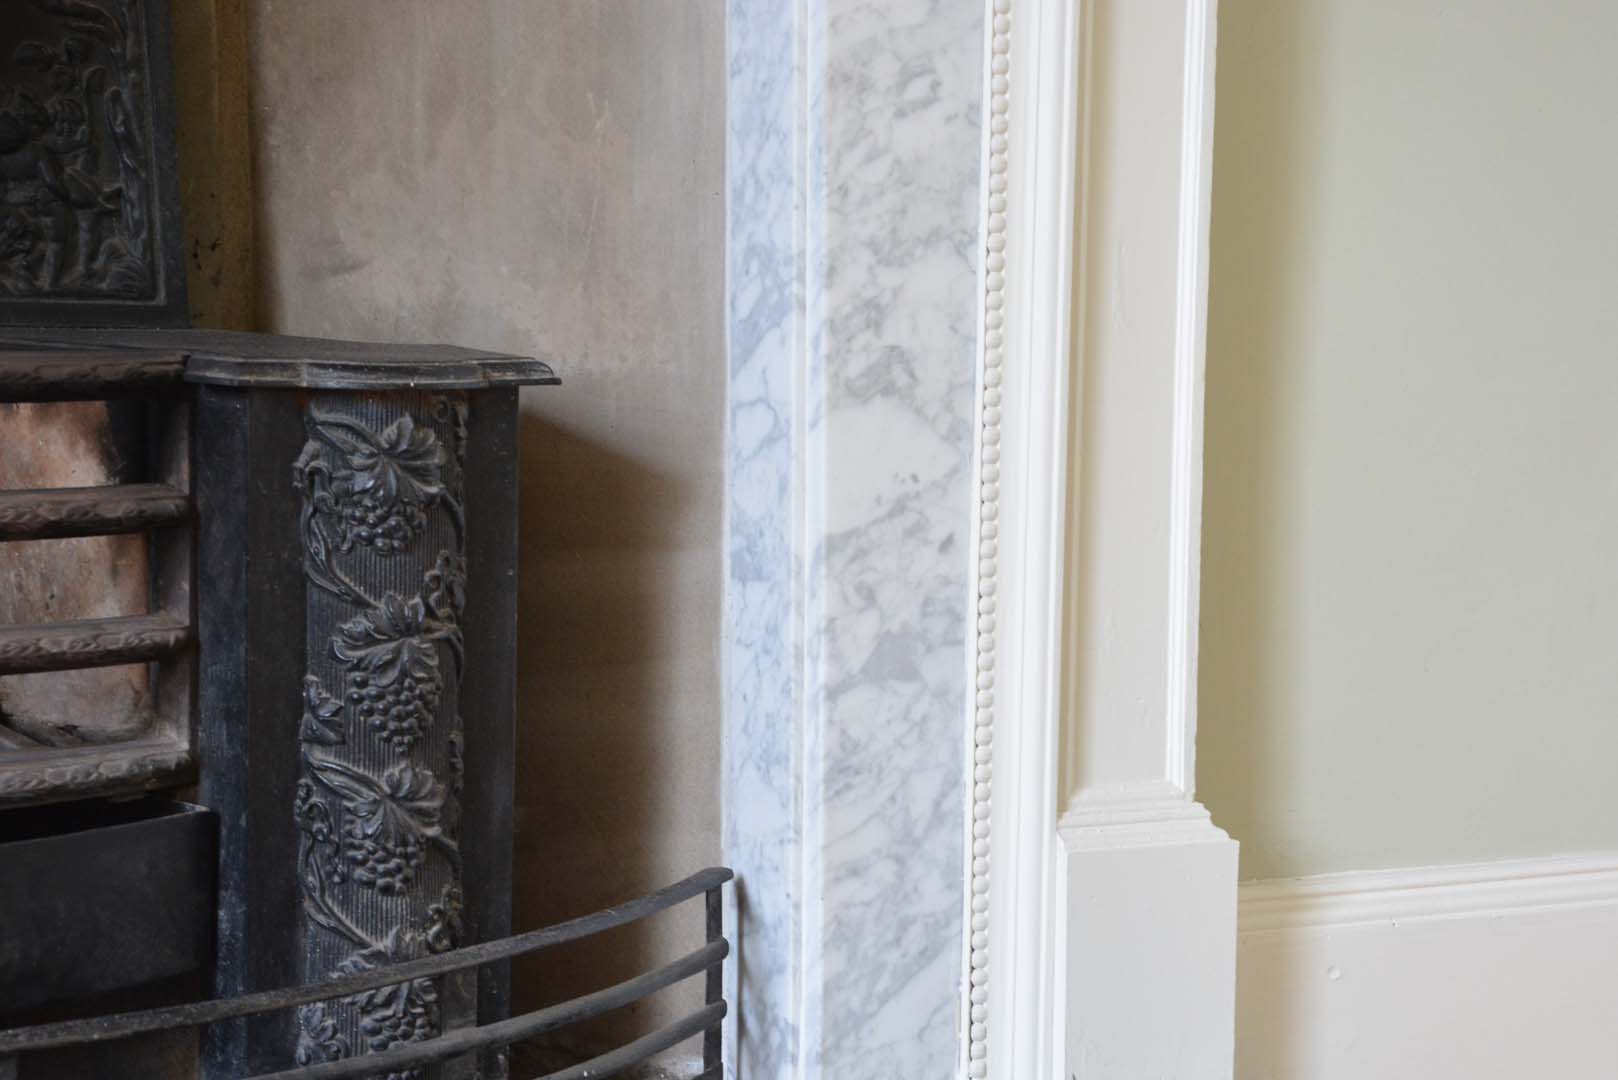 Georgian House image of bottom corner of marble fireplace following restoration